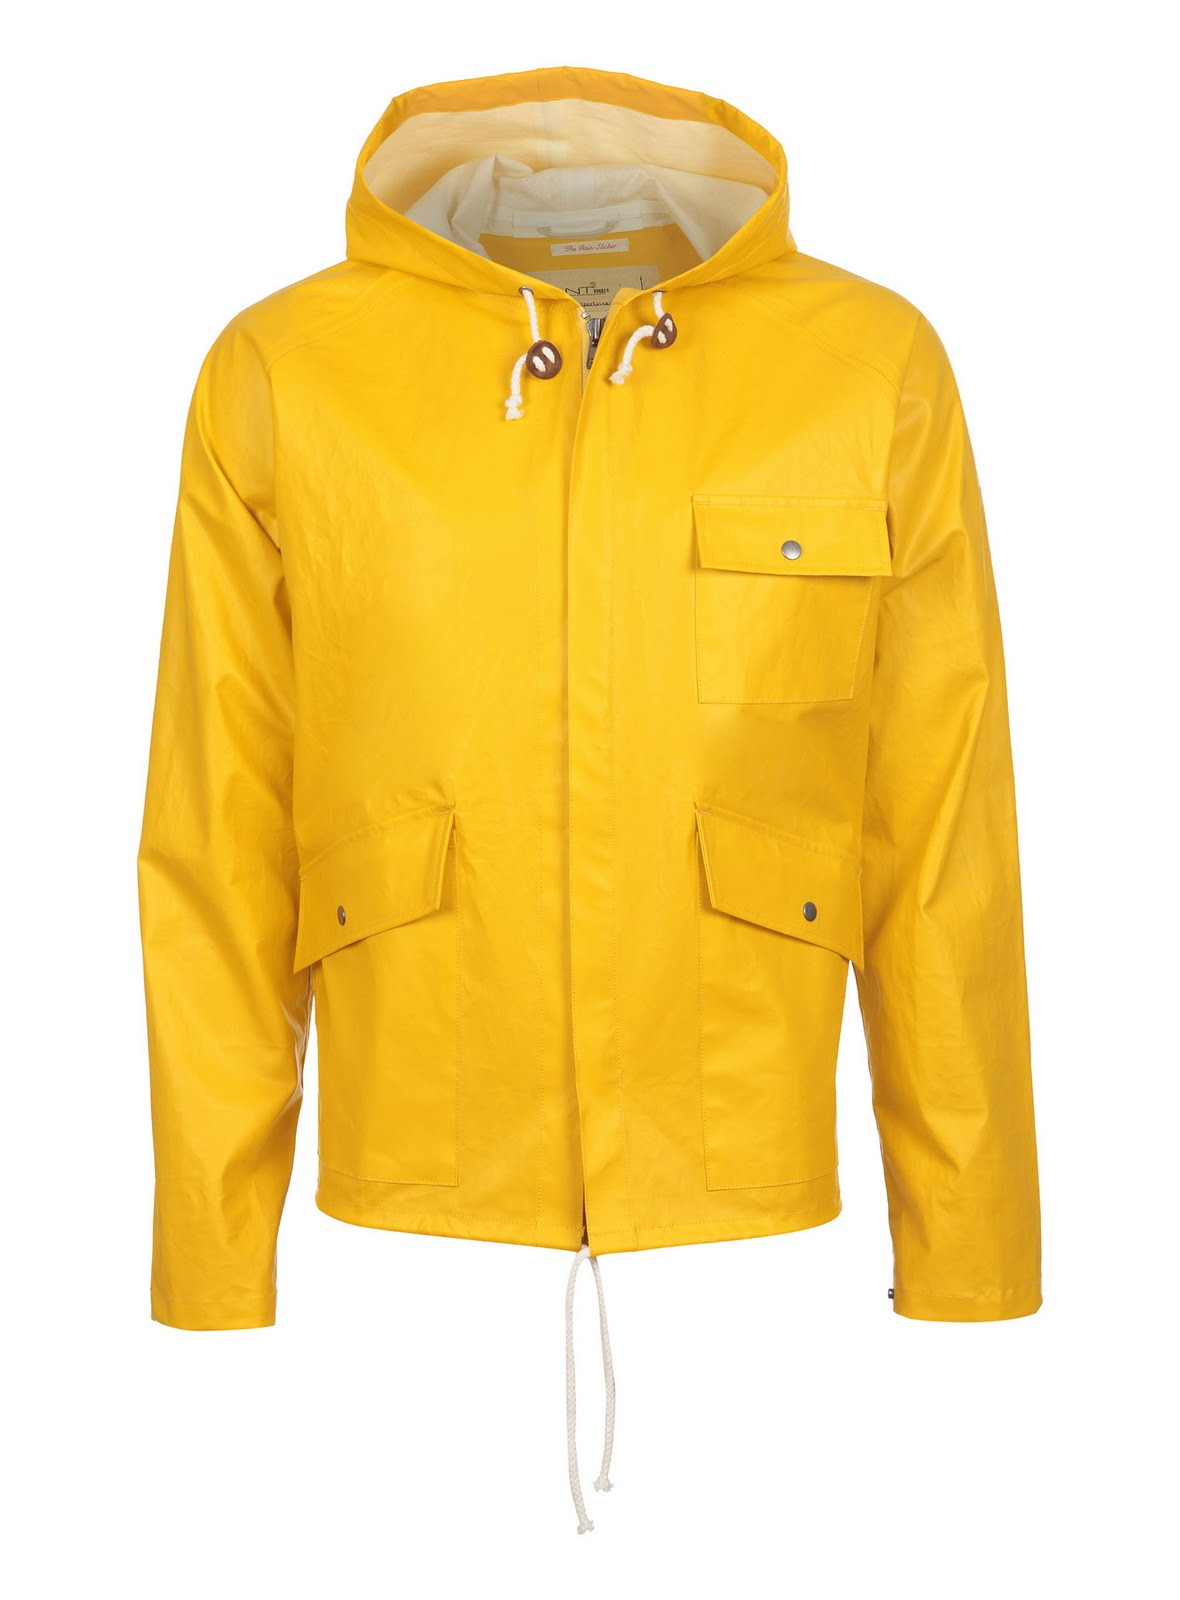 All Tied Up Yellow Raincoat